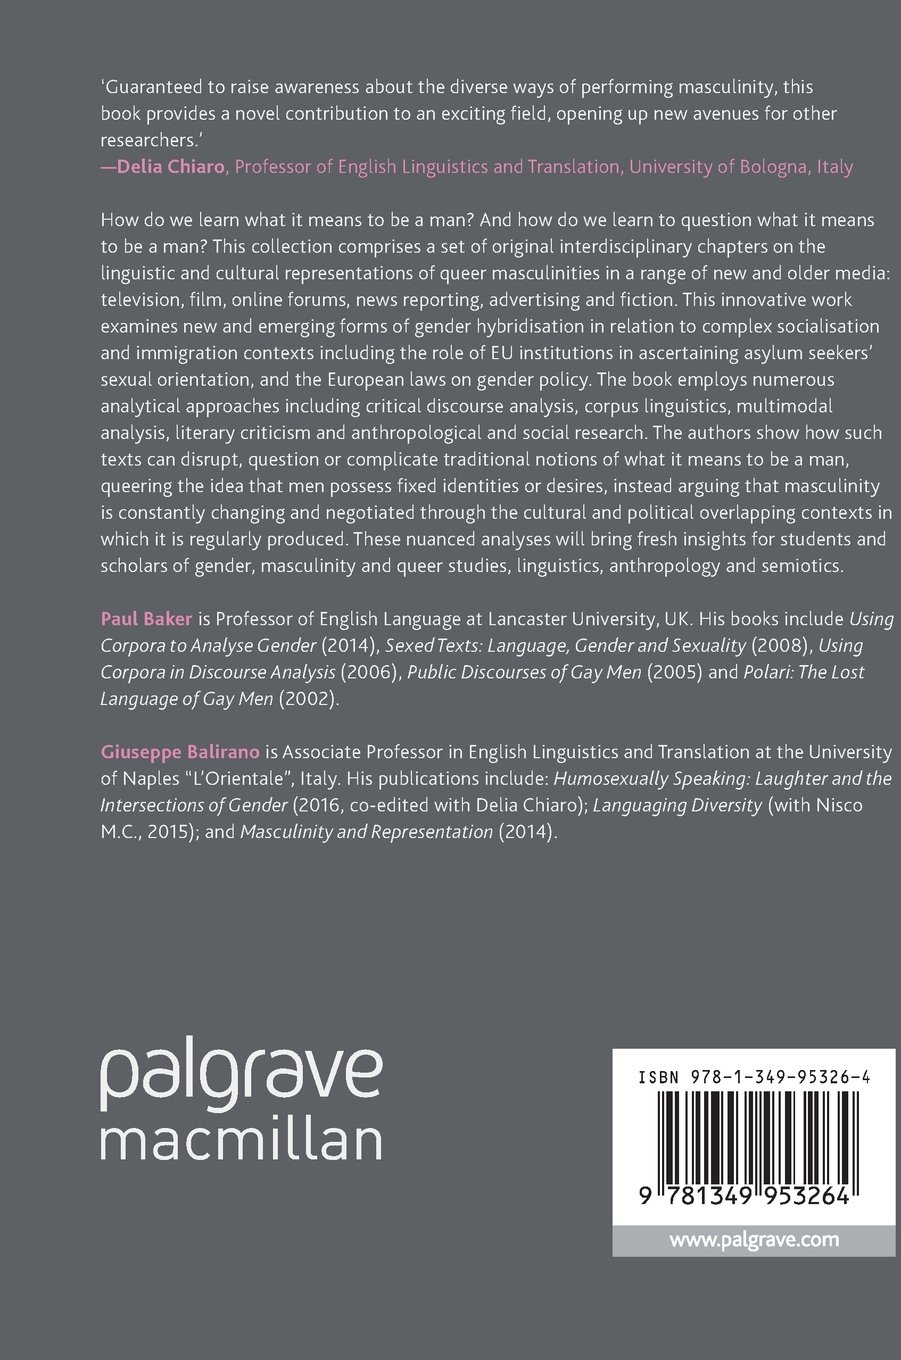 Queering Masculinities in Language and Culture (Palgrave Studies in Language, Gender and Sexuality) by Palgrave Macmillan